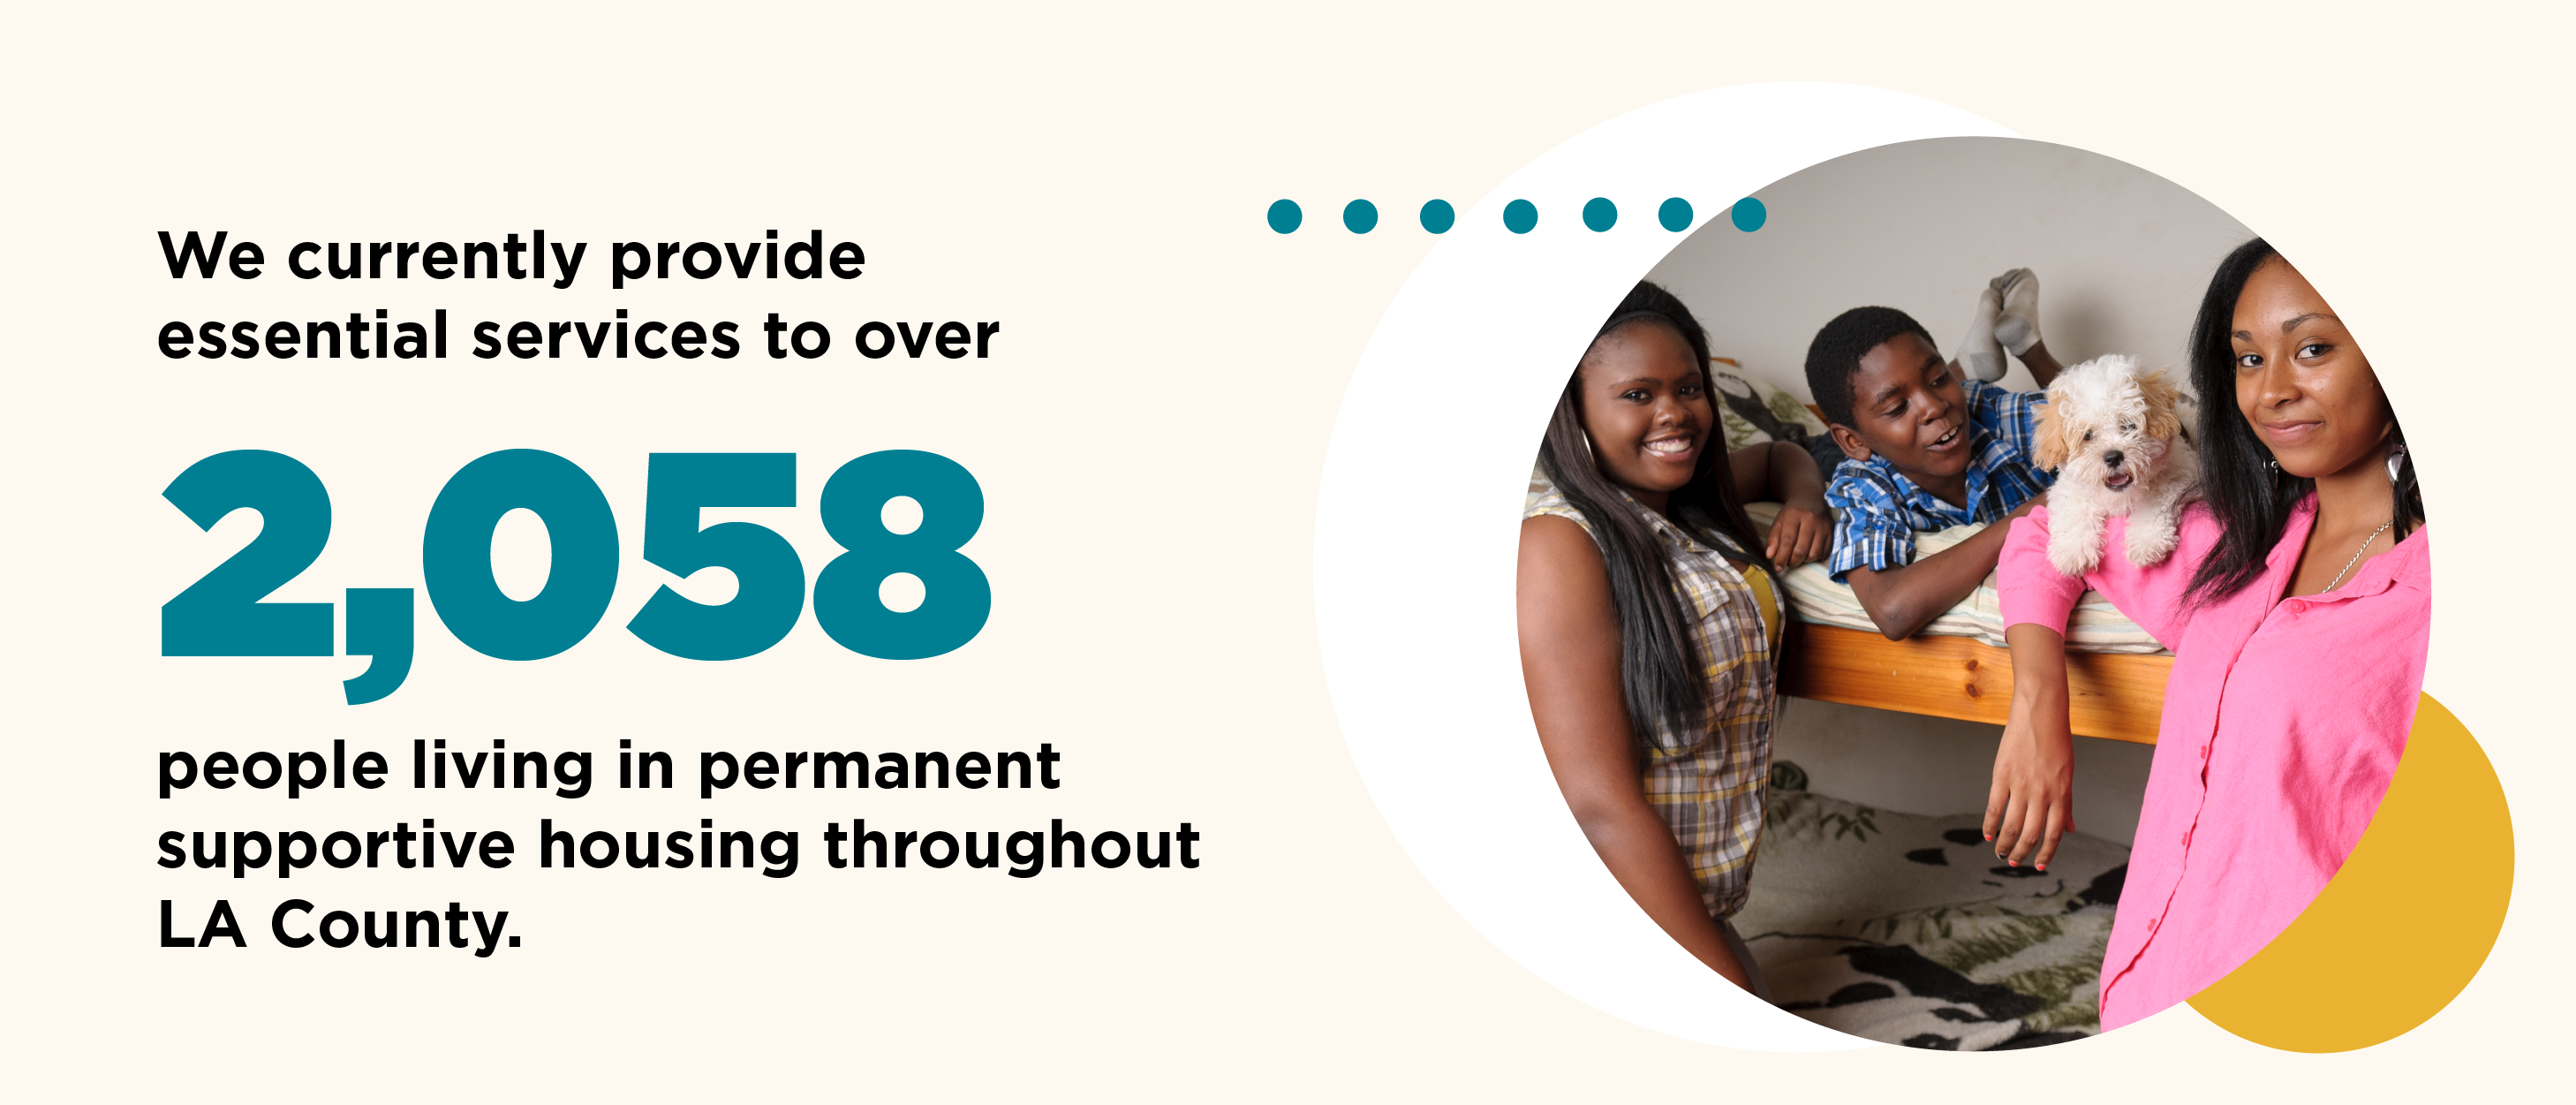 We currently provide essential services to cover 2058 people living in permanent supportive housing throughout LA county.